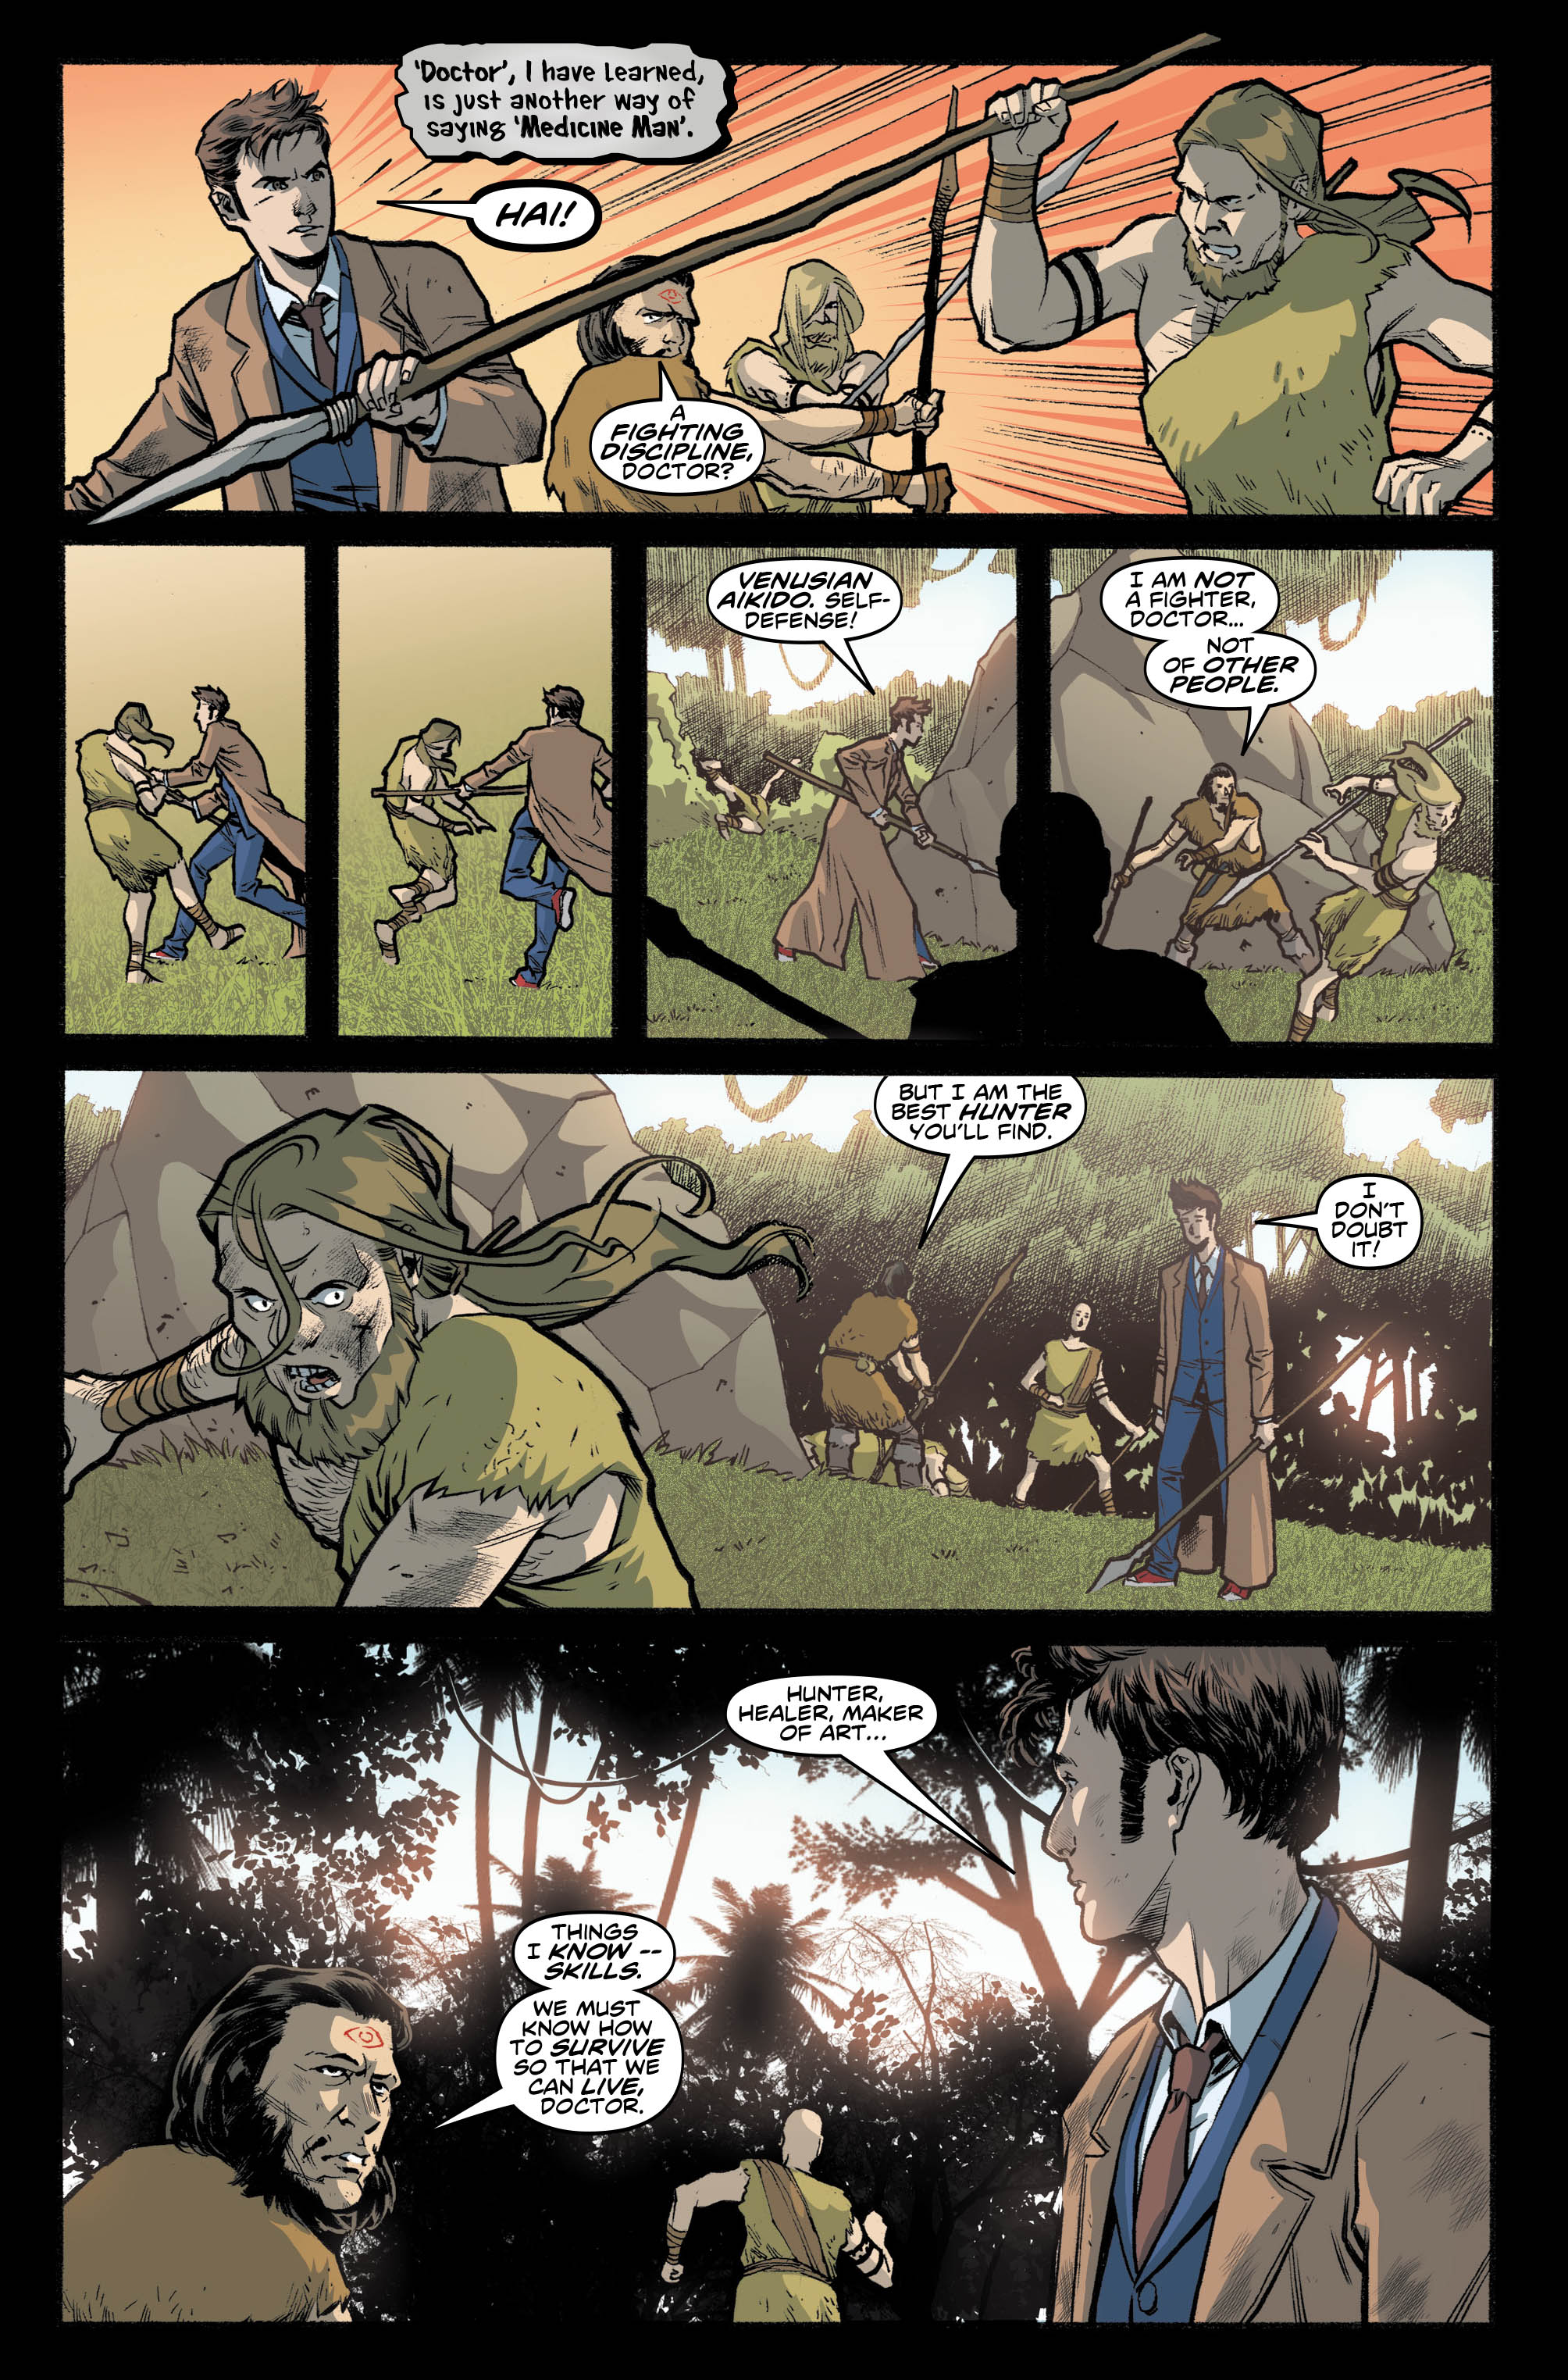 Doctor Who: The Tenth Doctor #2.5 Preview Page